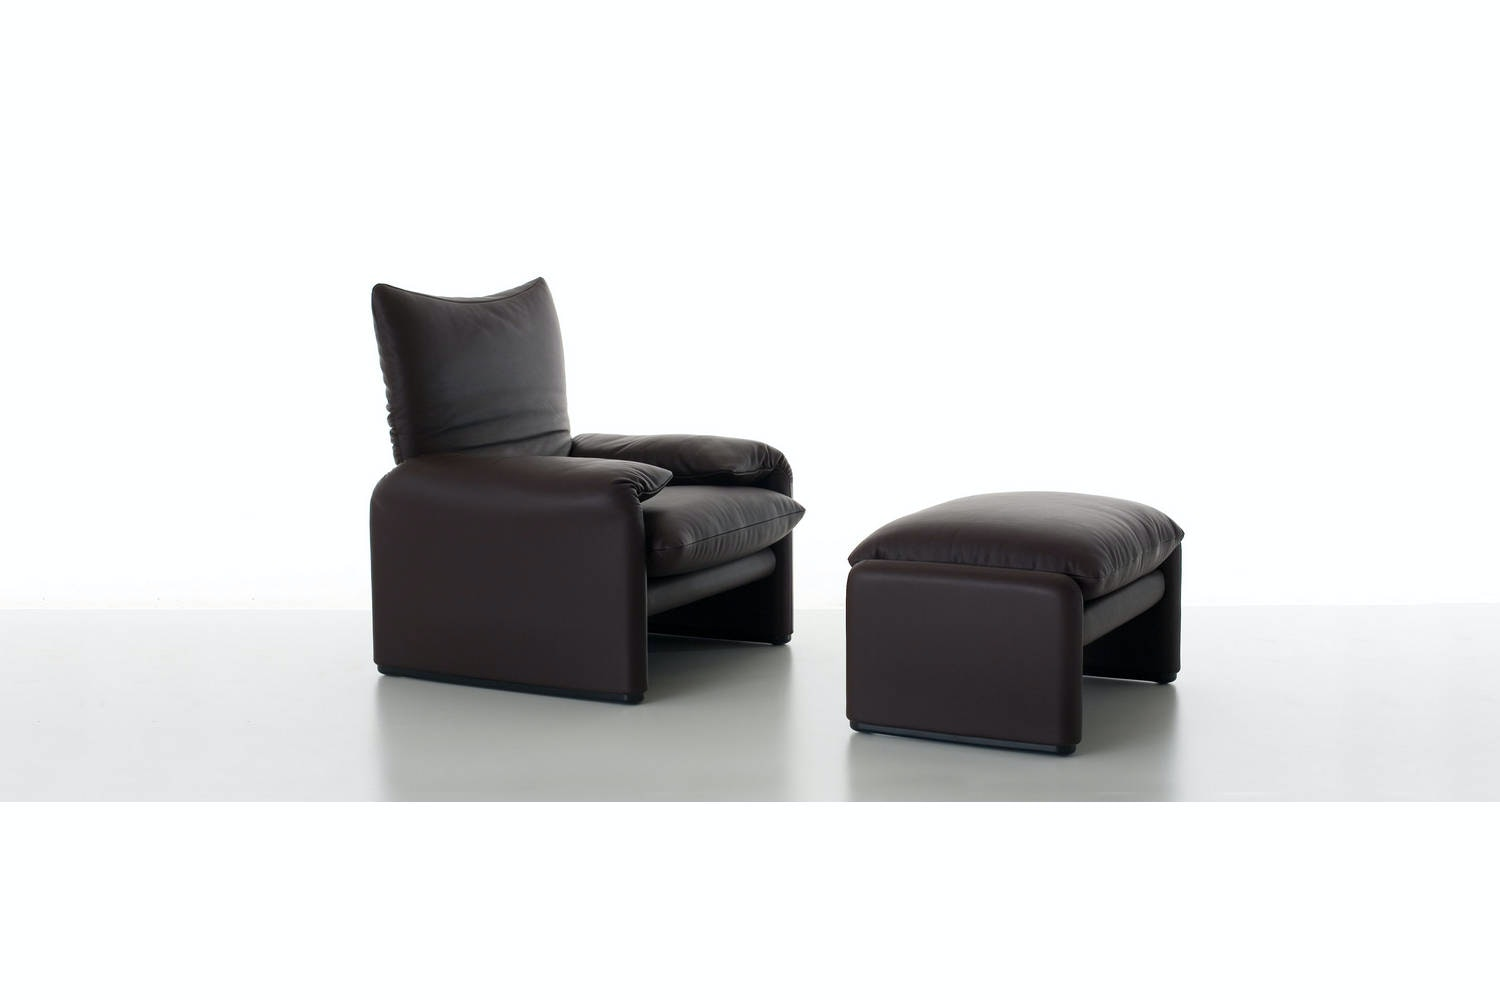 675 Maralunga Armchair by Vico Magistretti for Cassina